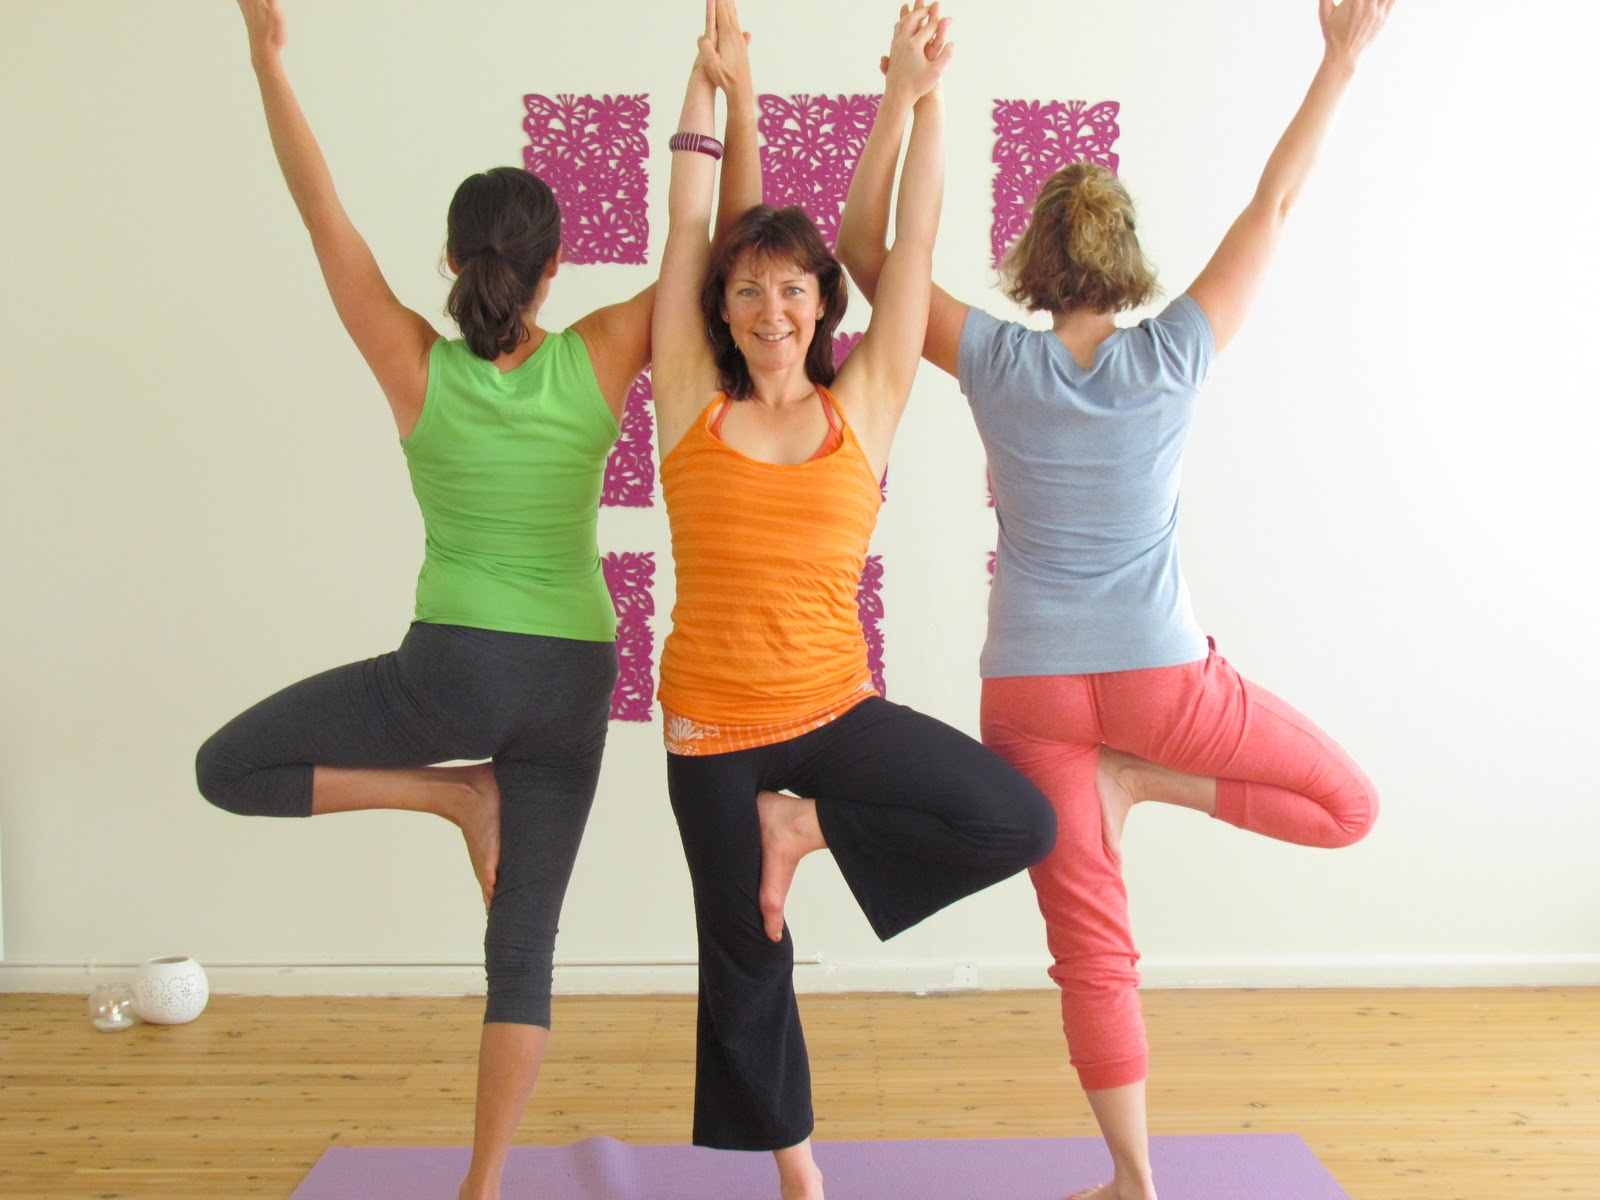 40 Best Collections Yoga Challenge De 4 Personas Faciles Aigautoins